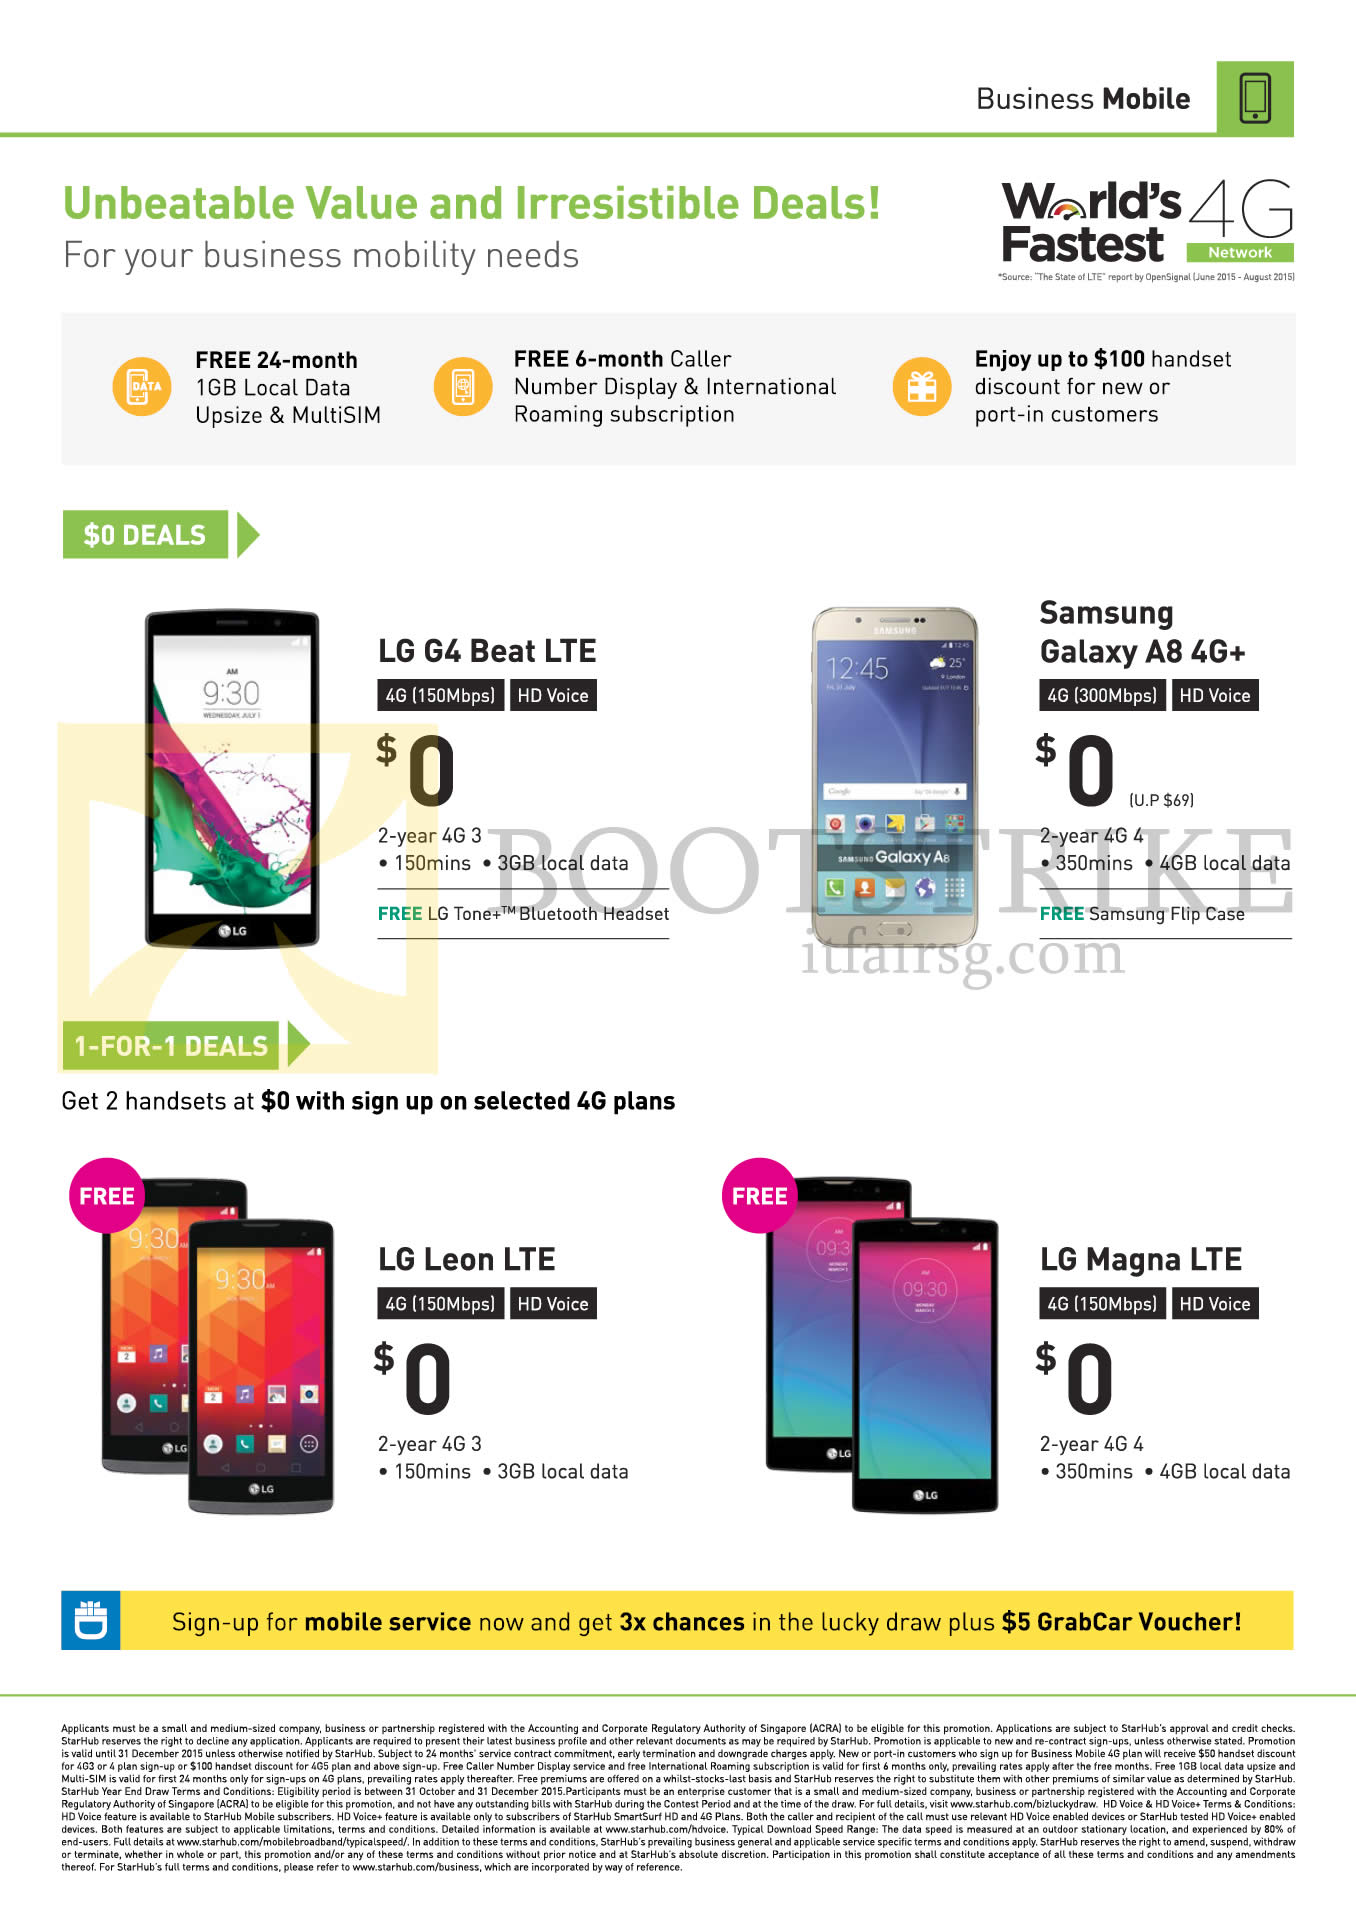 SITEX 2015 price list image brochure of Starhub Business LG G4 Beat, Leon LTE, Magna LTE, Samsung Galaxy A8